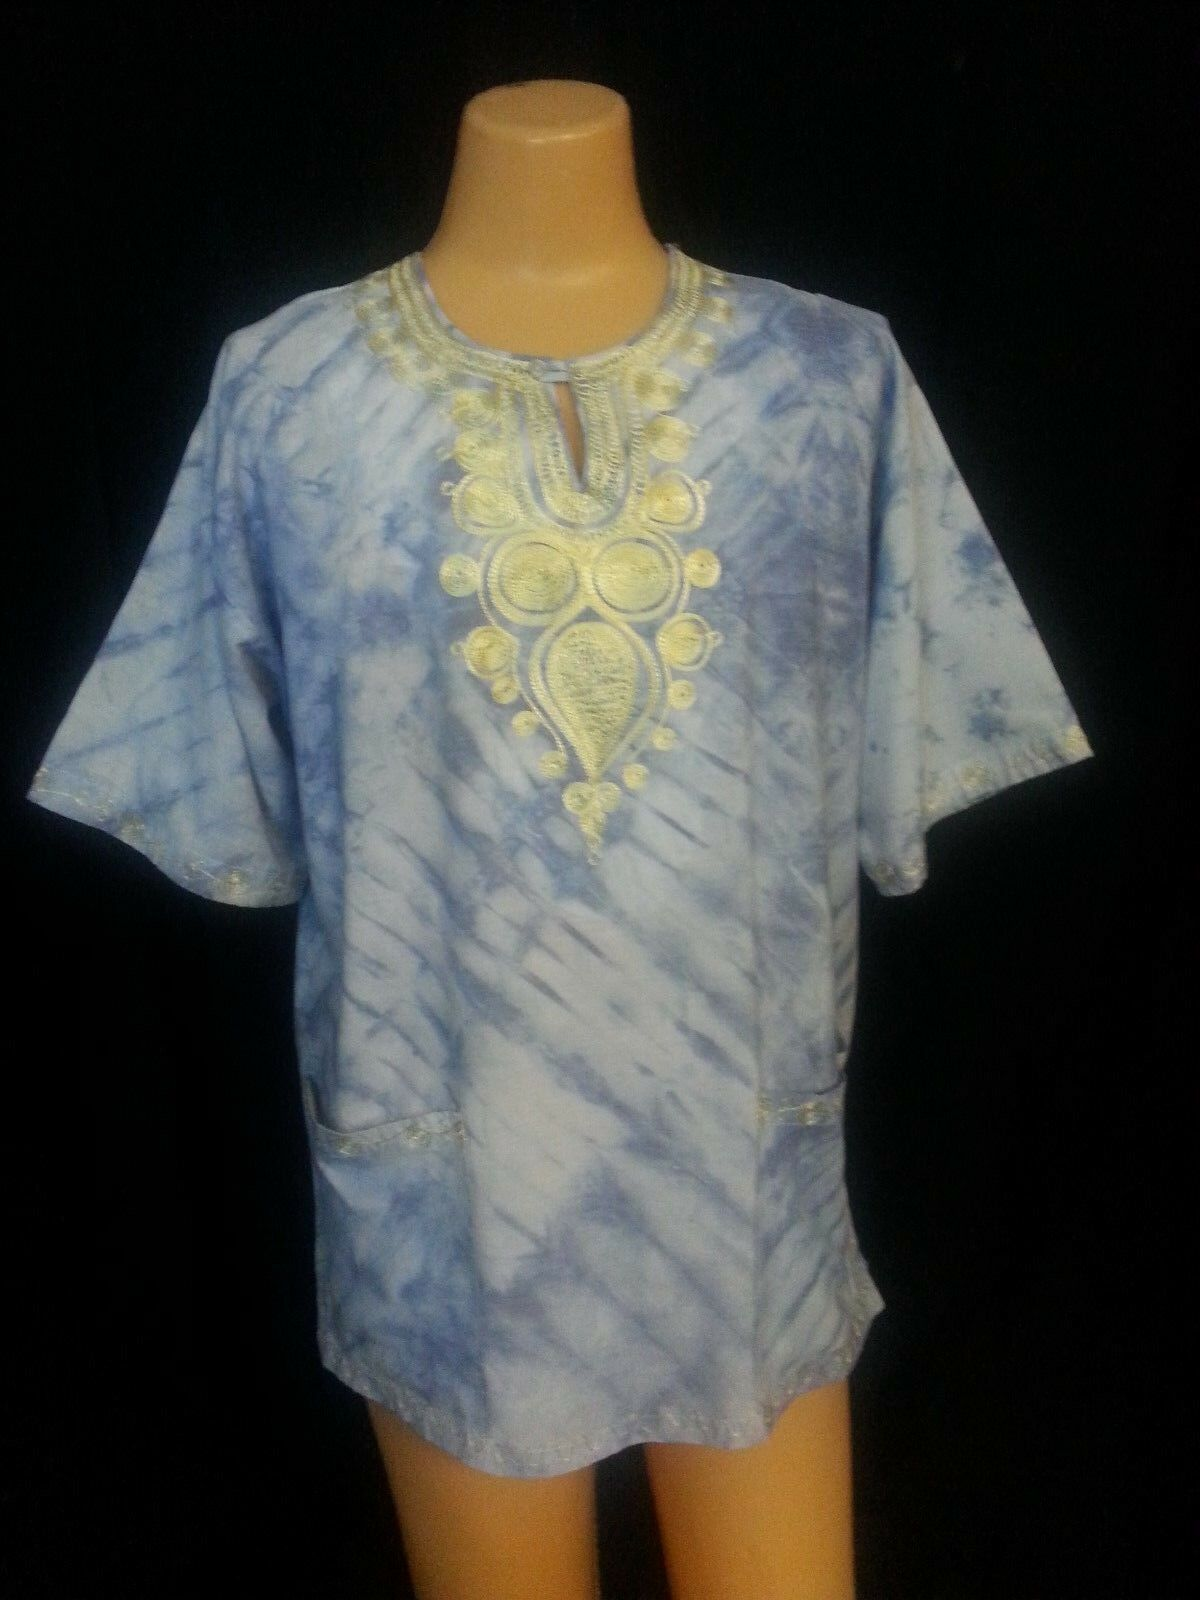 VTG GALA Dashiki Top Shirt bluee WhiteTie-Dye Embroidery Tribal Hippie  L- to XL